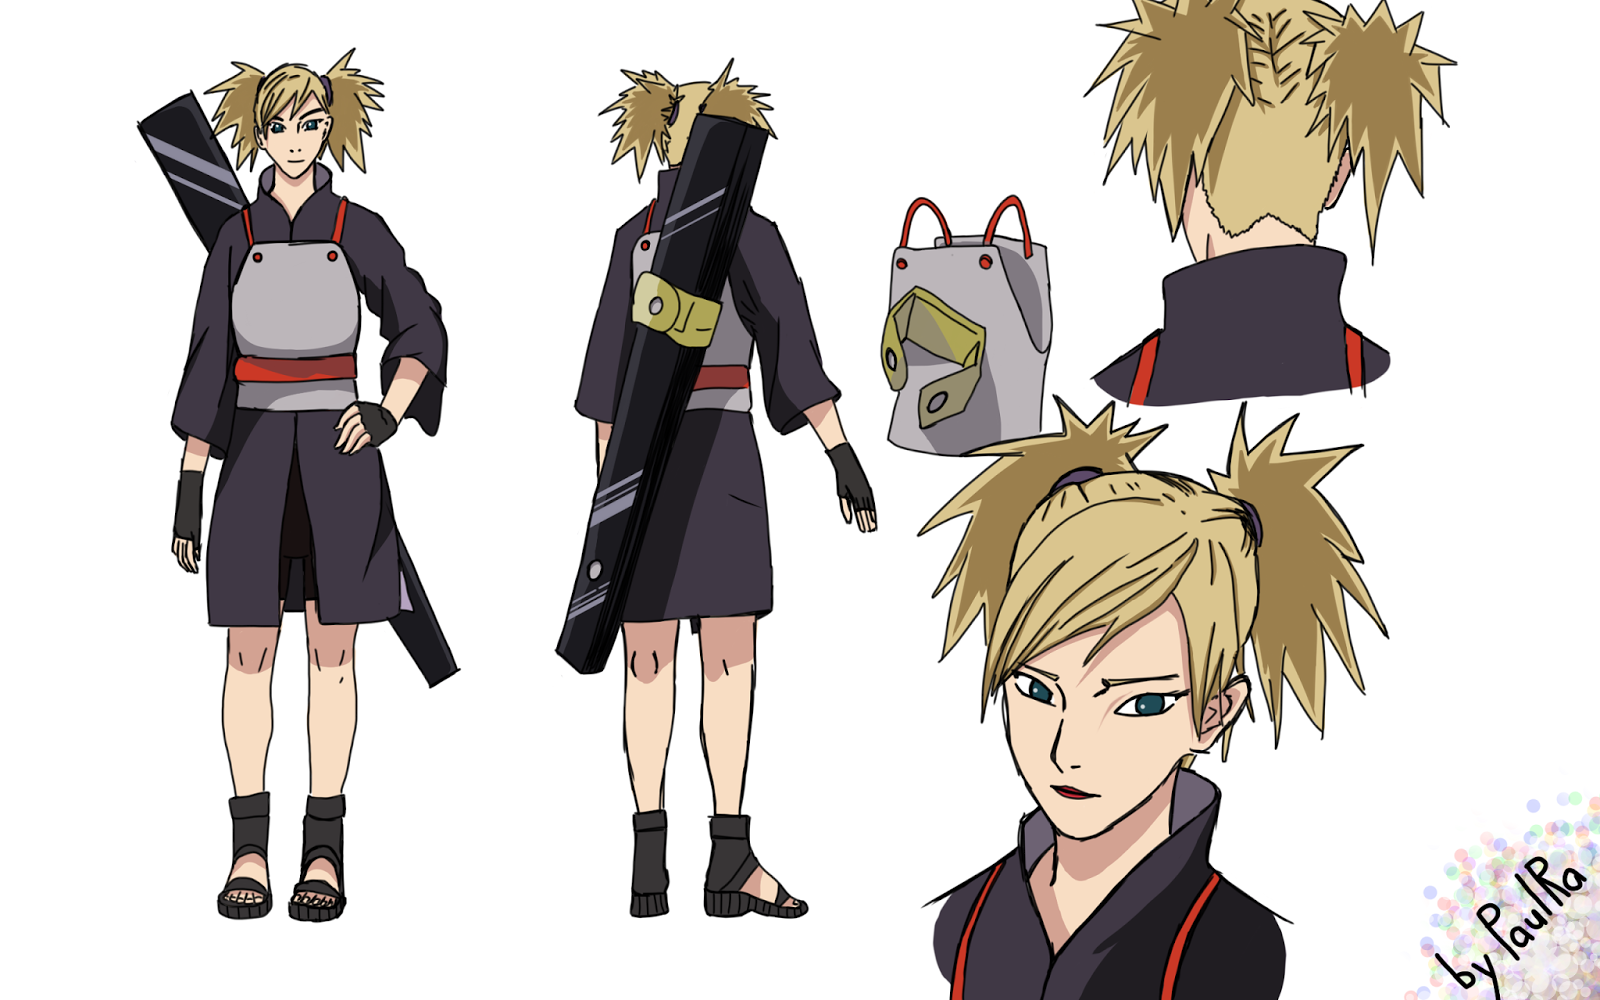 Character Design Naruto The Last : Sharpen your sickle at sunset naruto the last temari